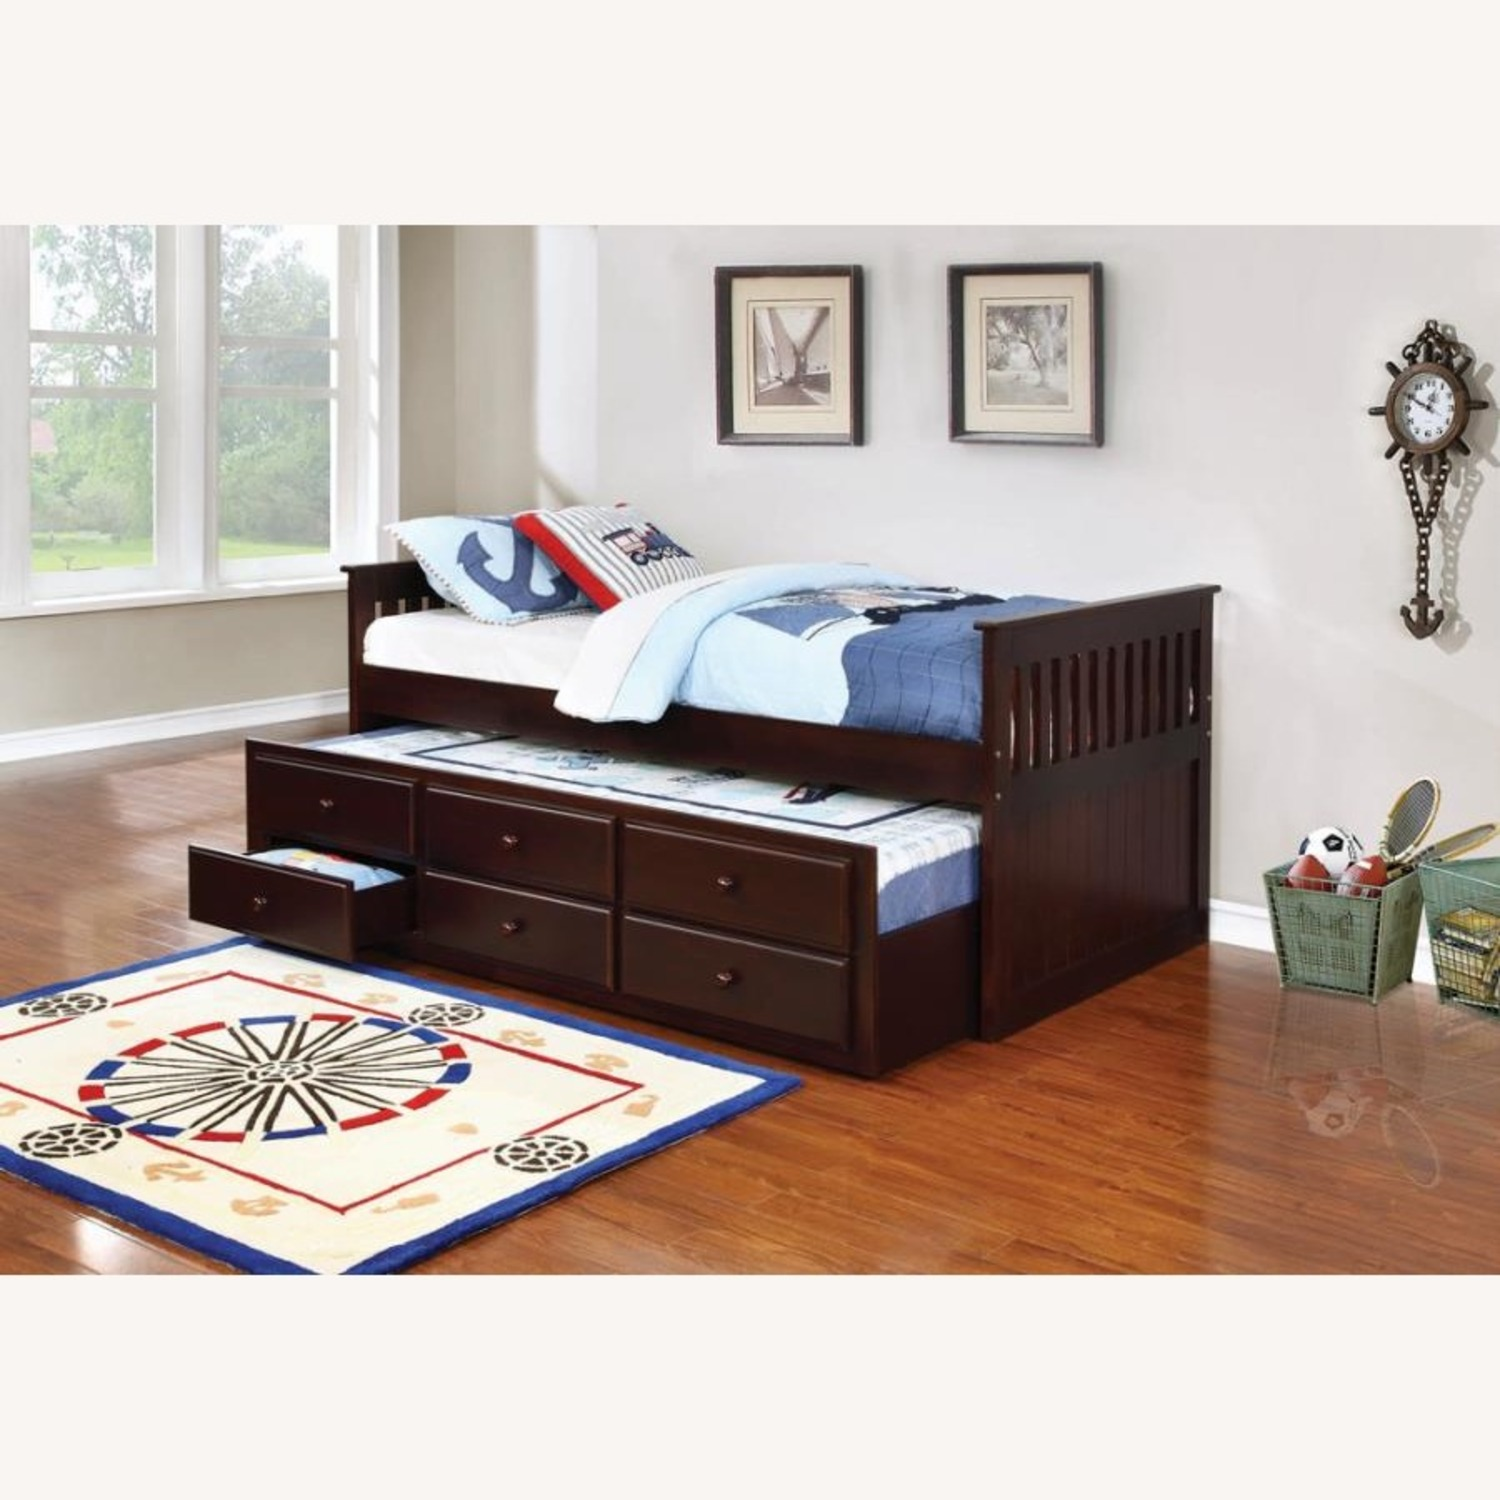 Twin Bed W/ Storage Trundle In Cappuccino Finish - image-2